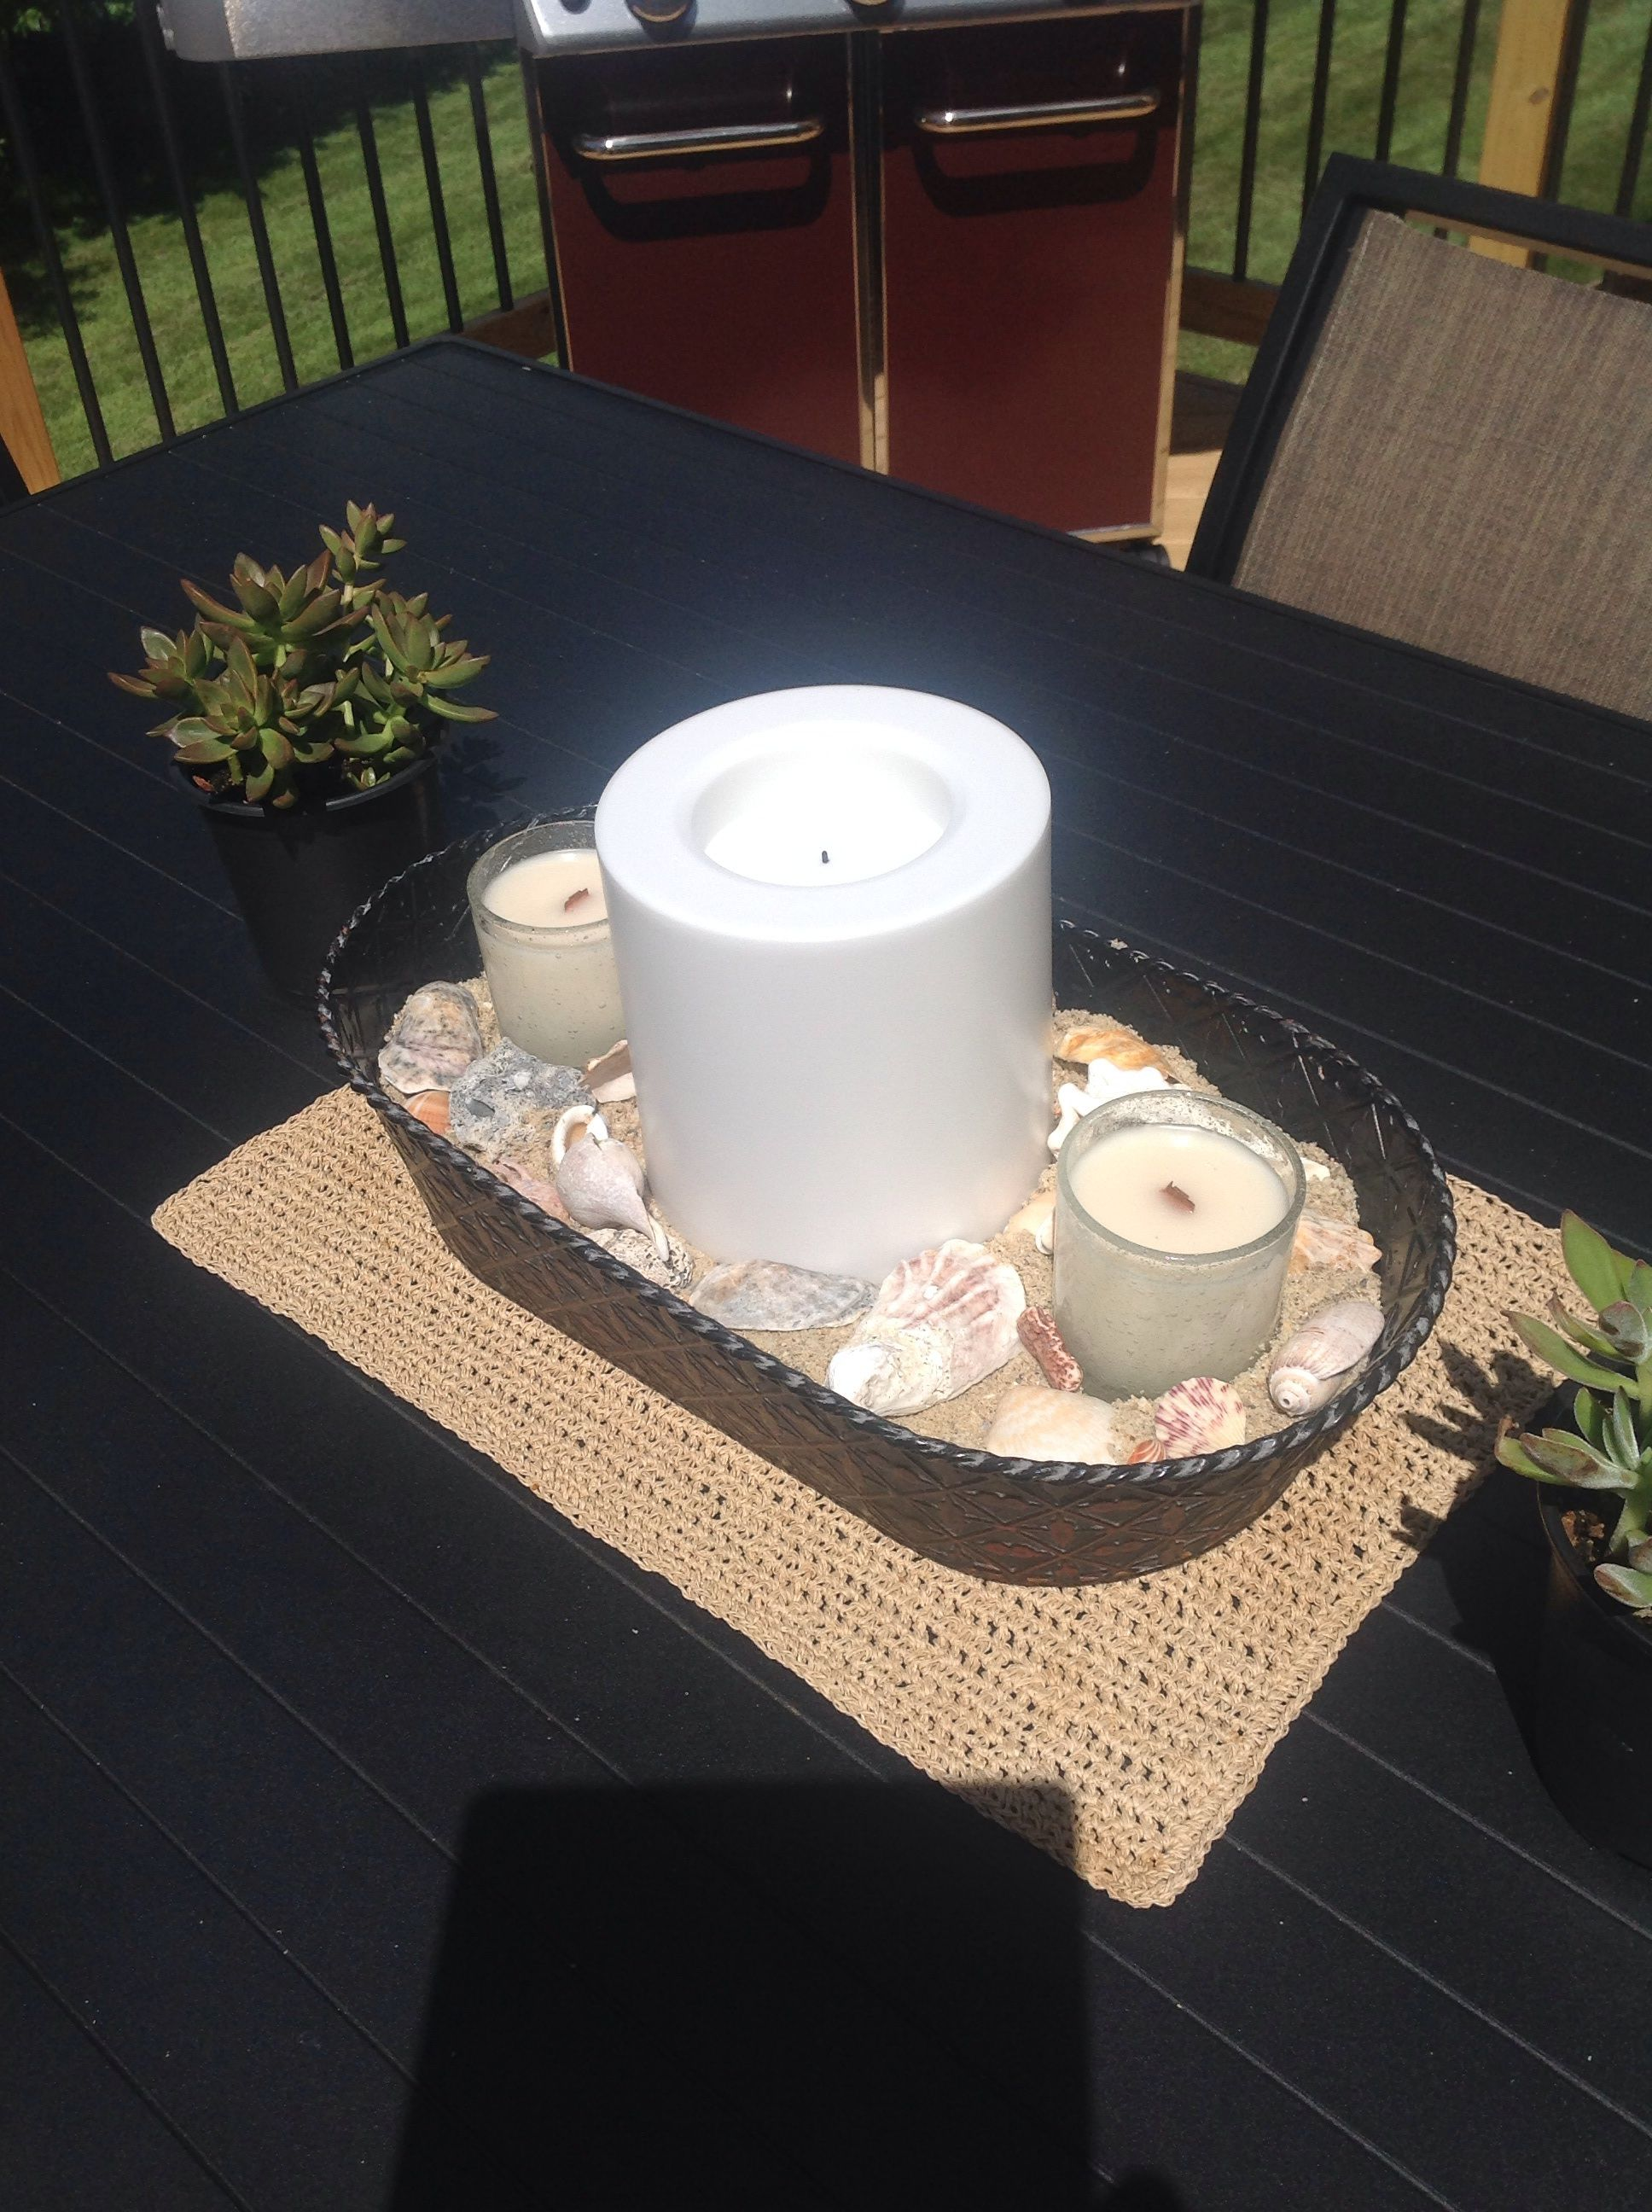 I had this metal container. Added sand along with some shells that we collected over the years and one large LED candle and two small citronella candles.